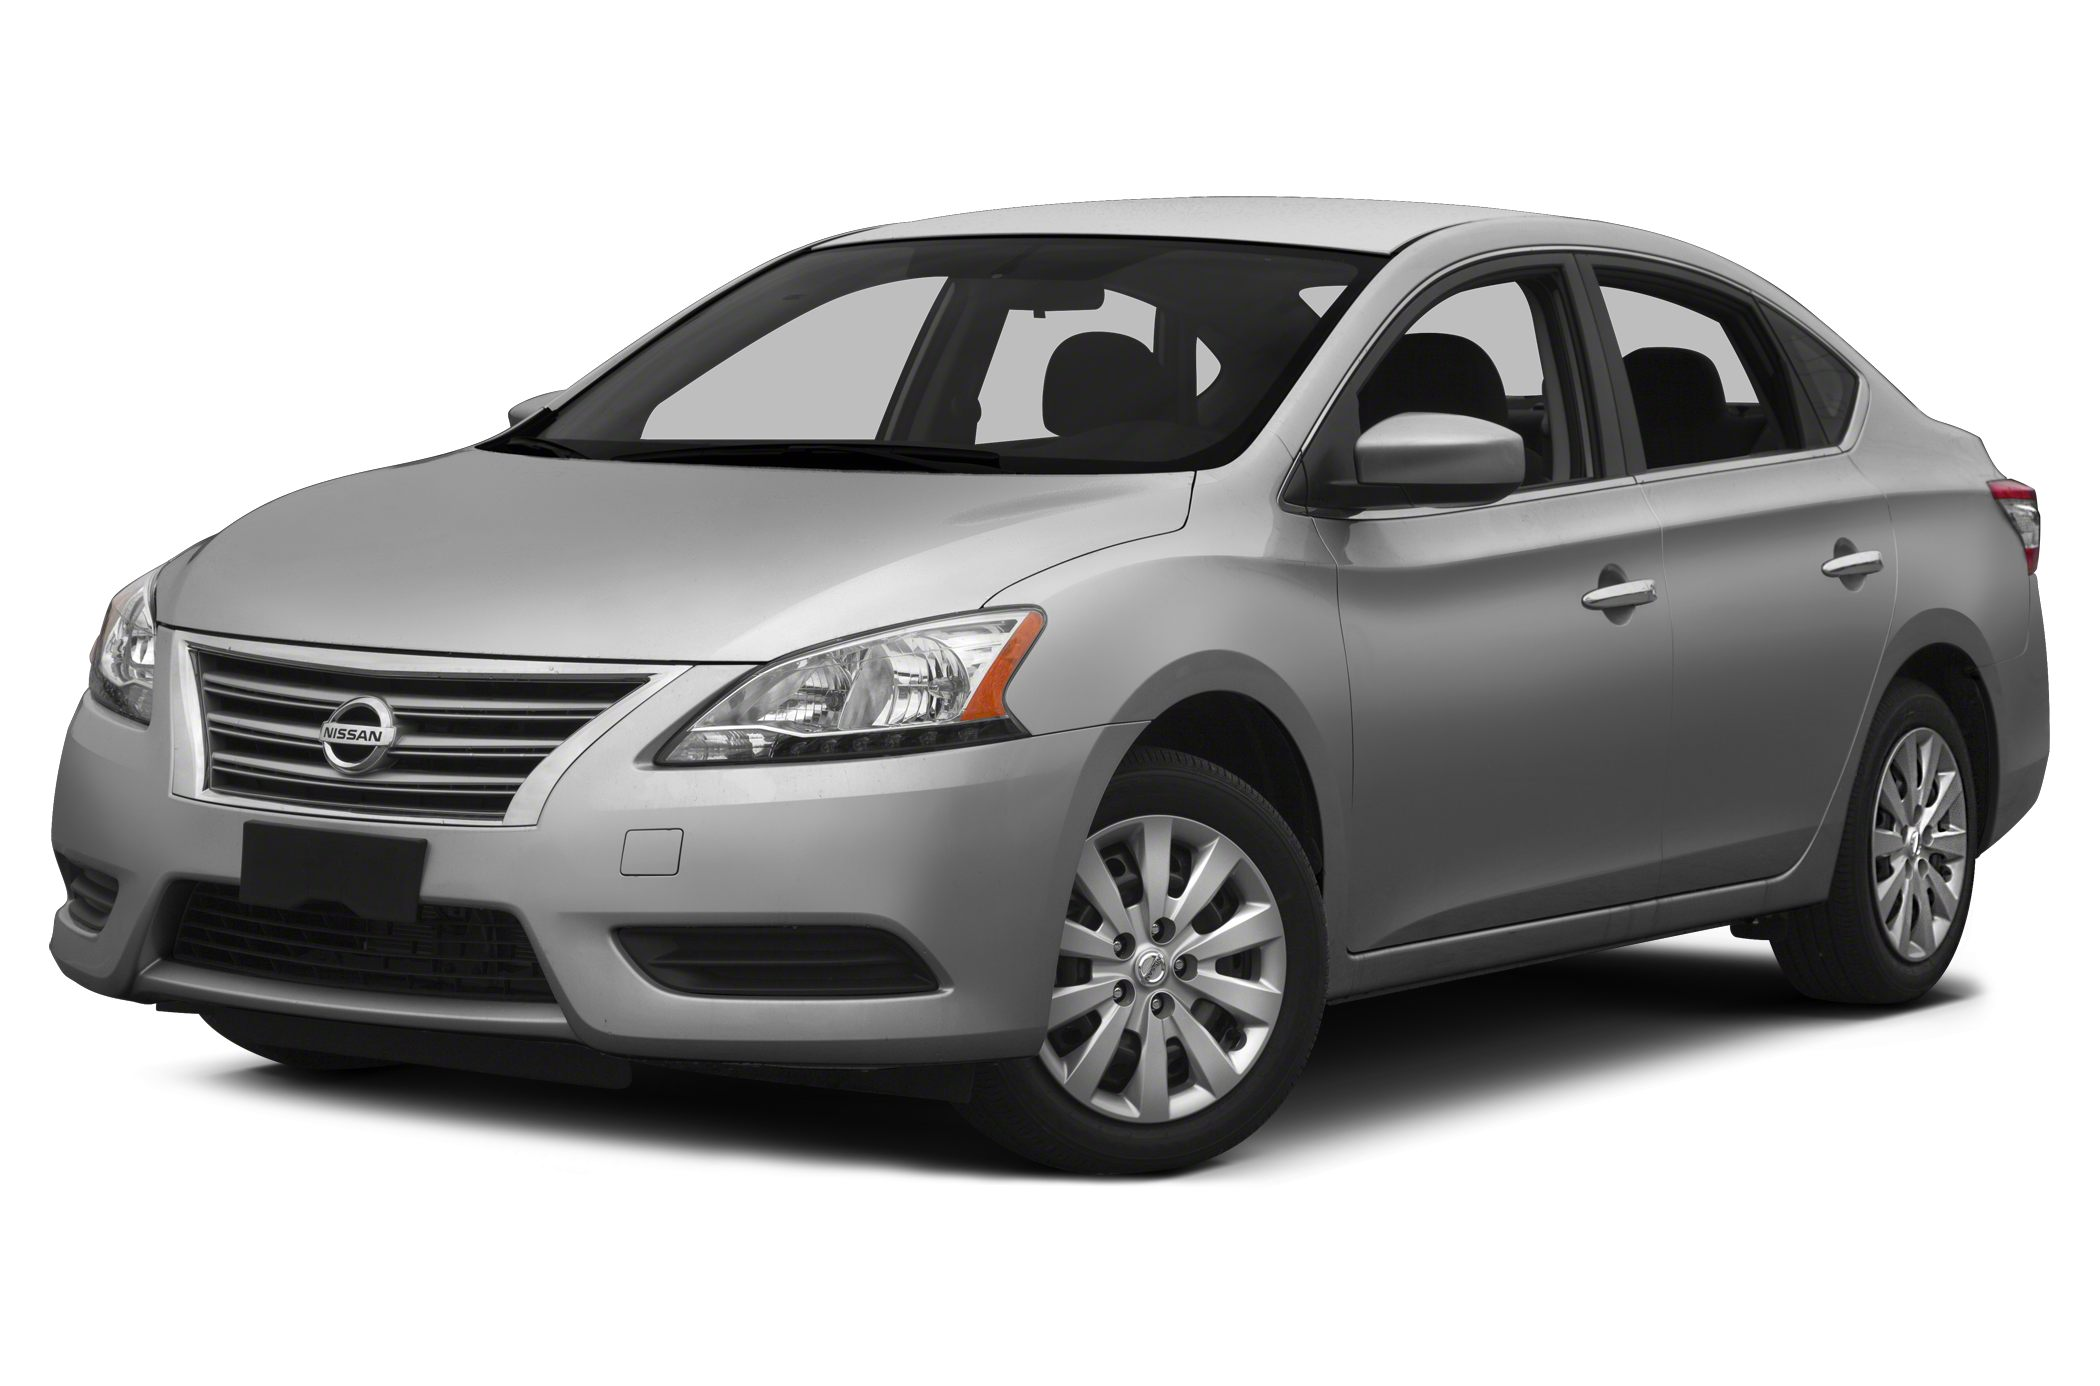 2014 Nissan Sentra SV Sedan for sale in Bronx for $19,775 with 5 miles.